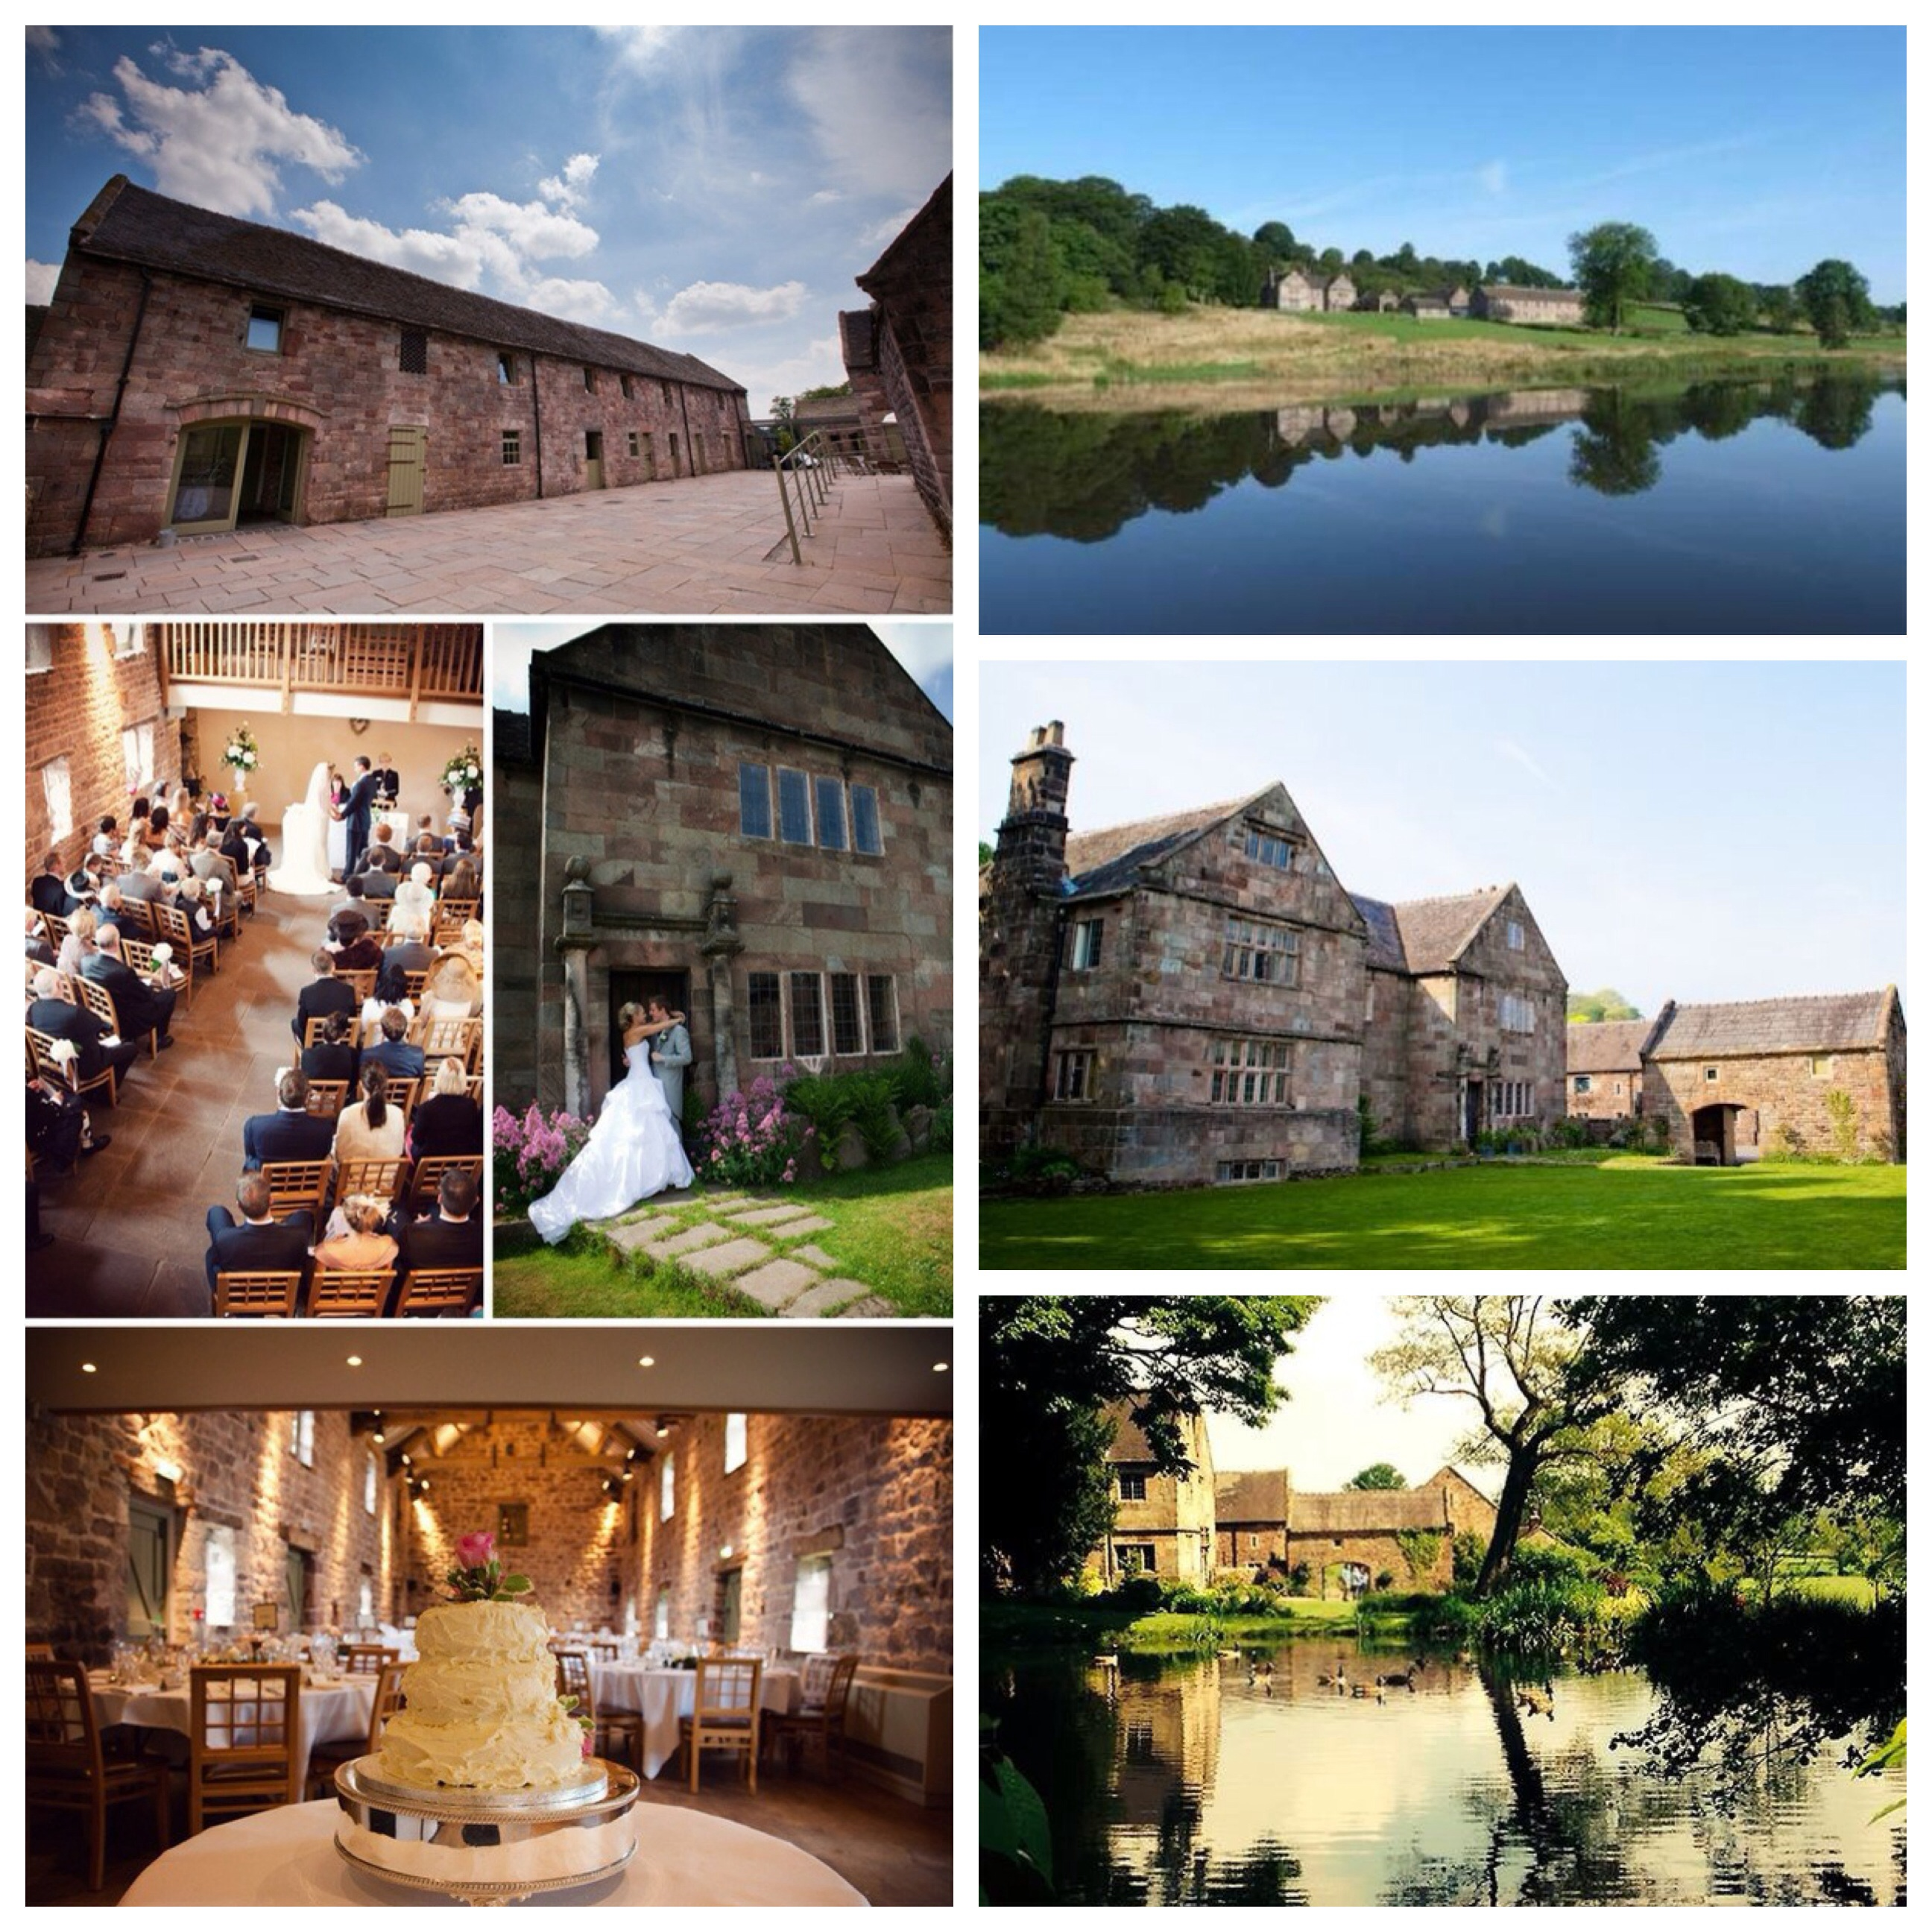 The Ashes wedding venue Stoke on Trent